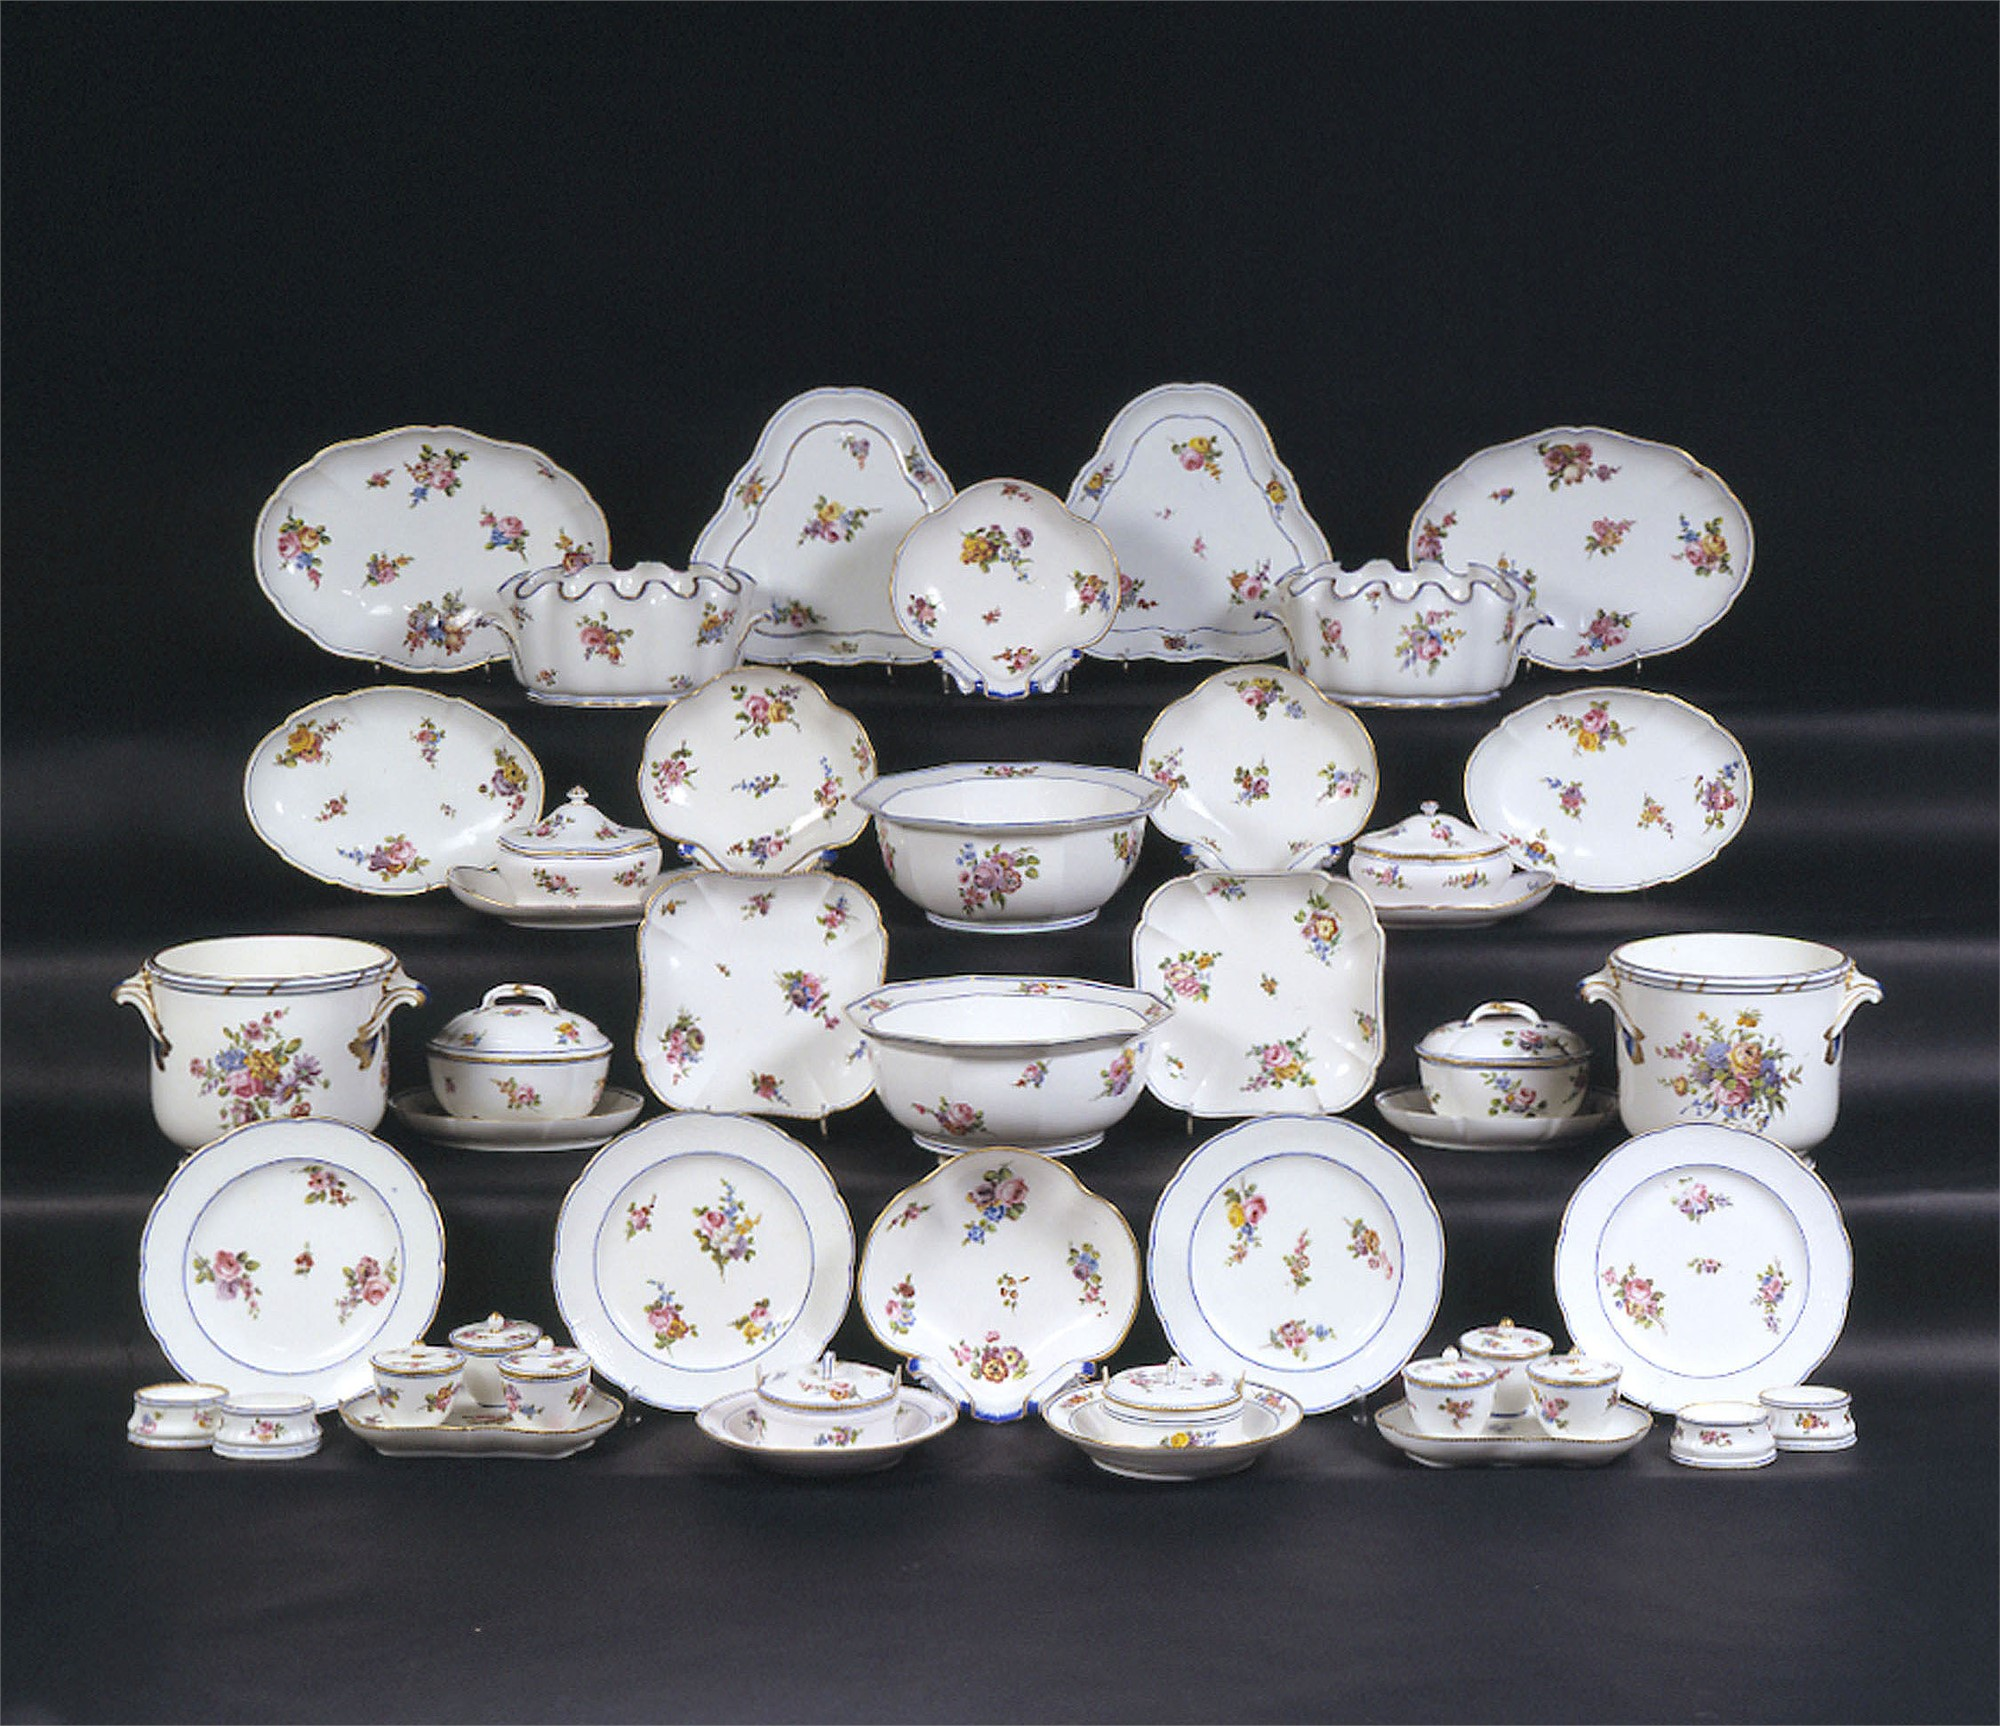 84-PIECE SEVRES PORCELAIN PART DINNER SERVICE